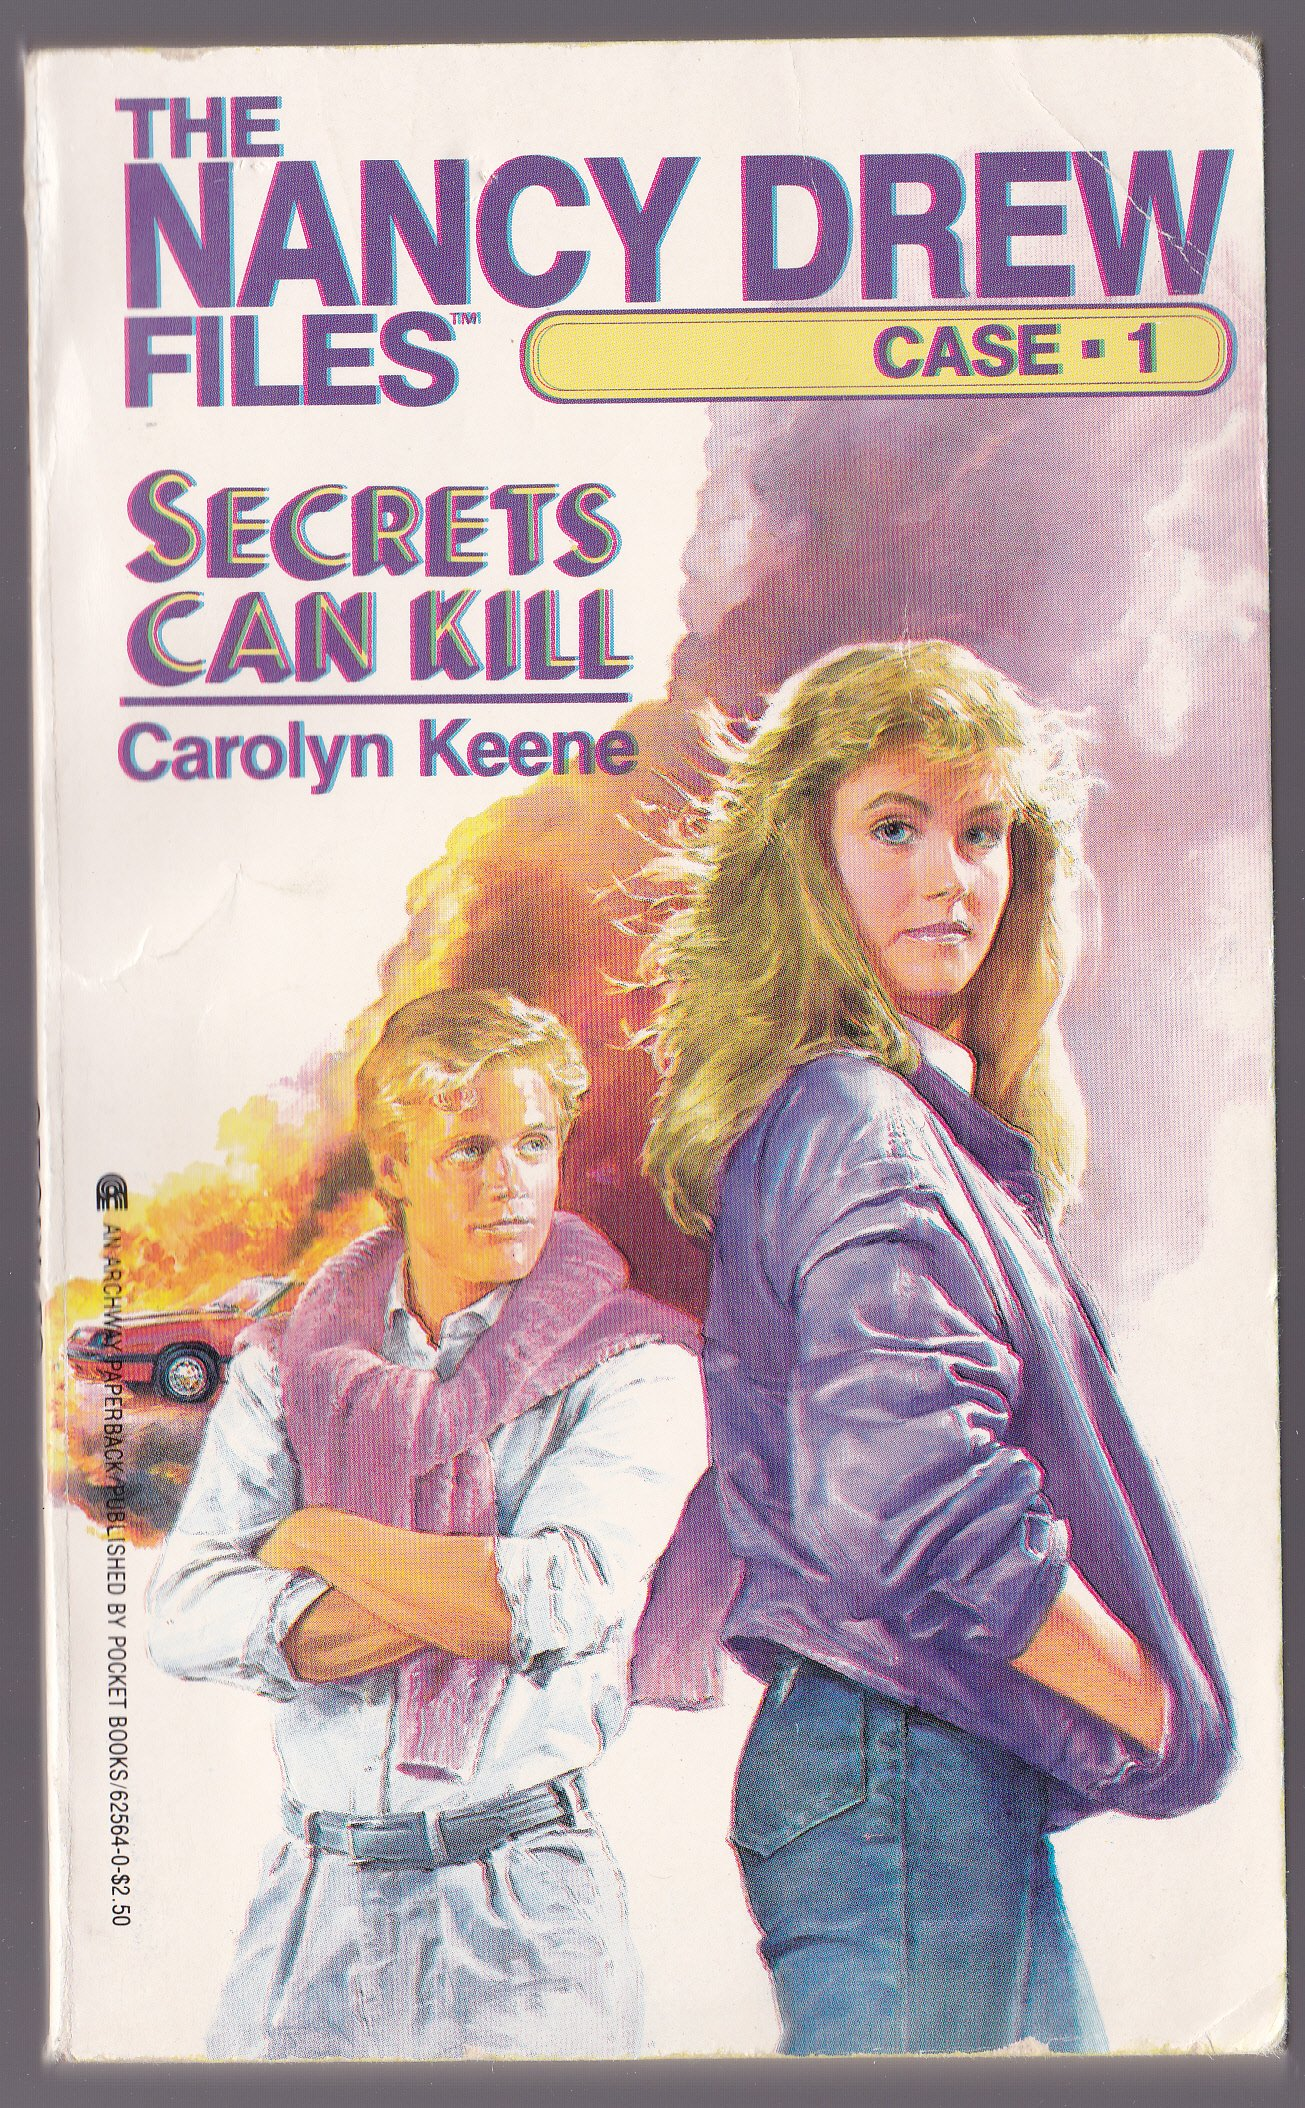 The Nancy Drew Files: Secrets Can Kill